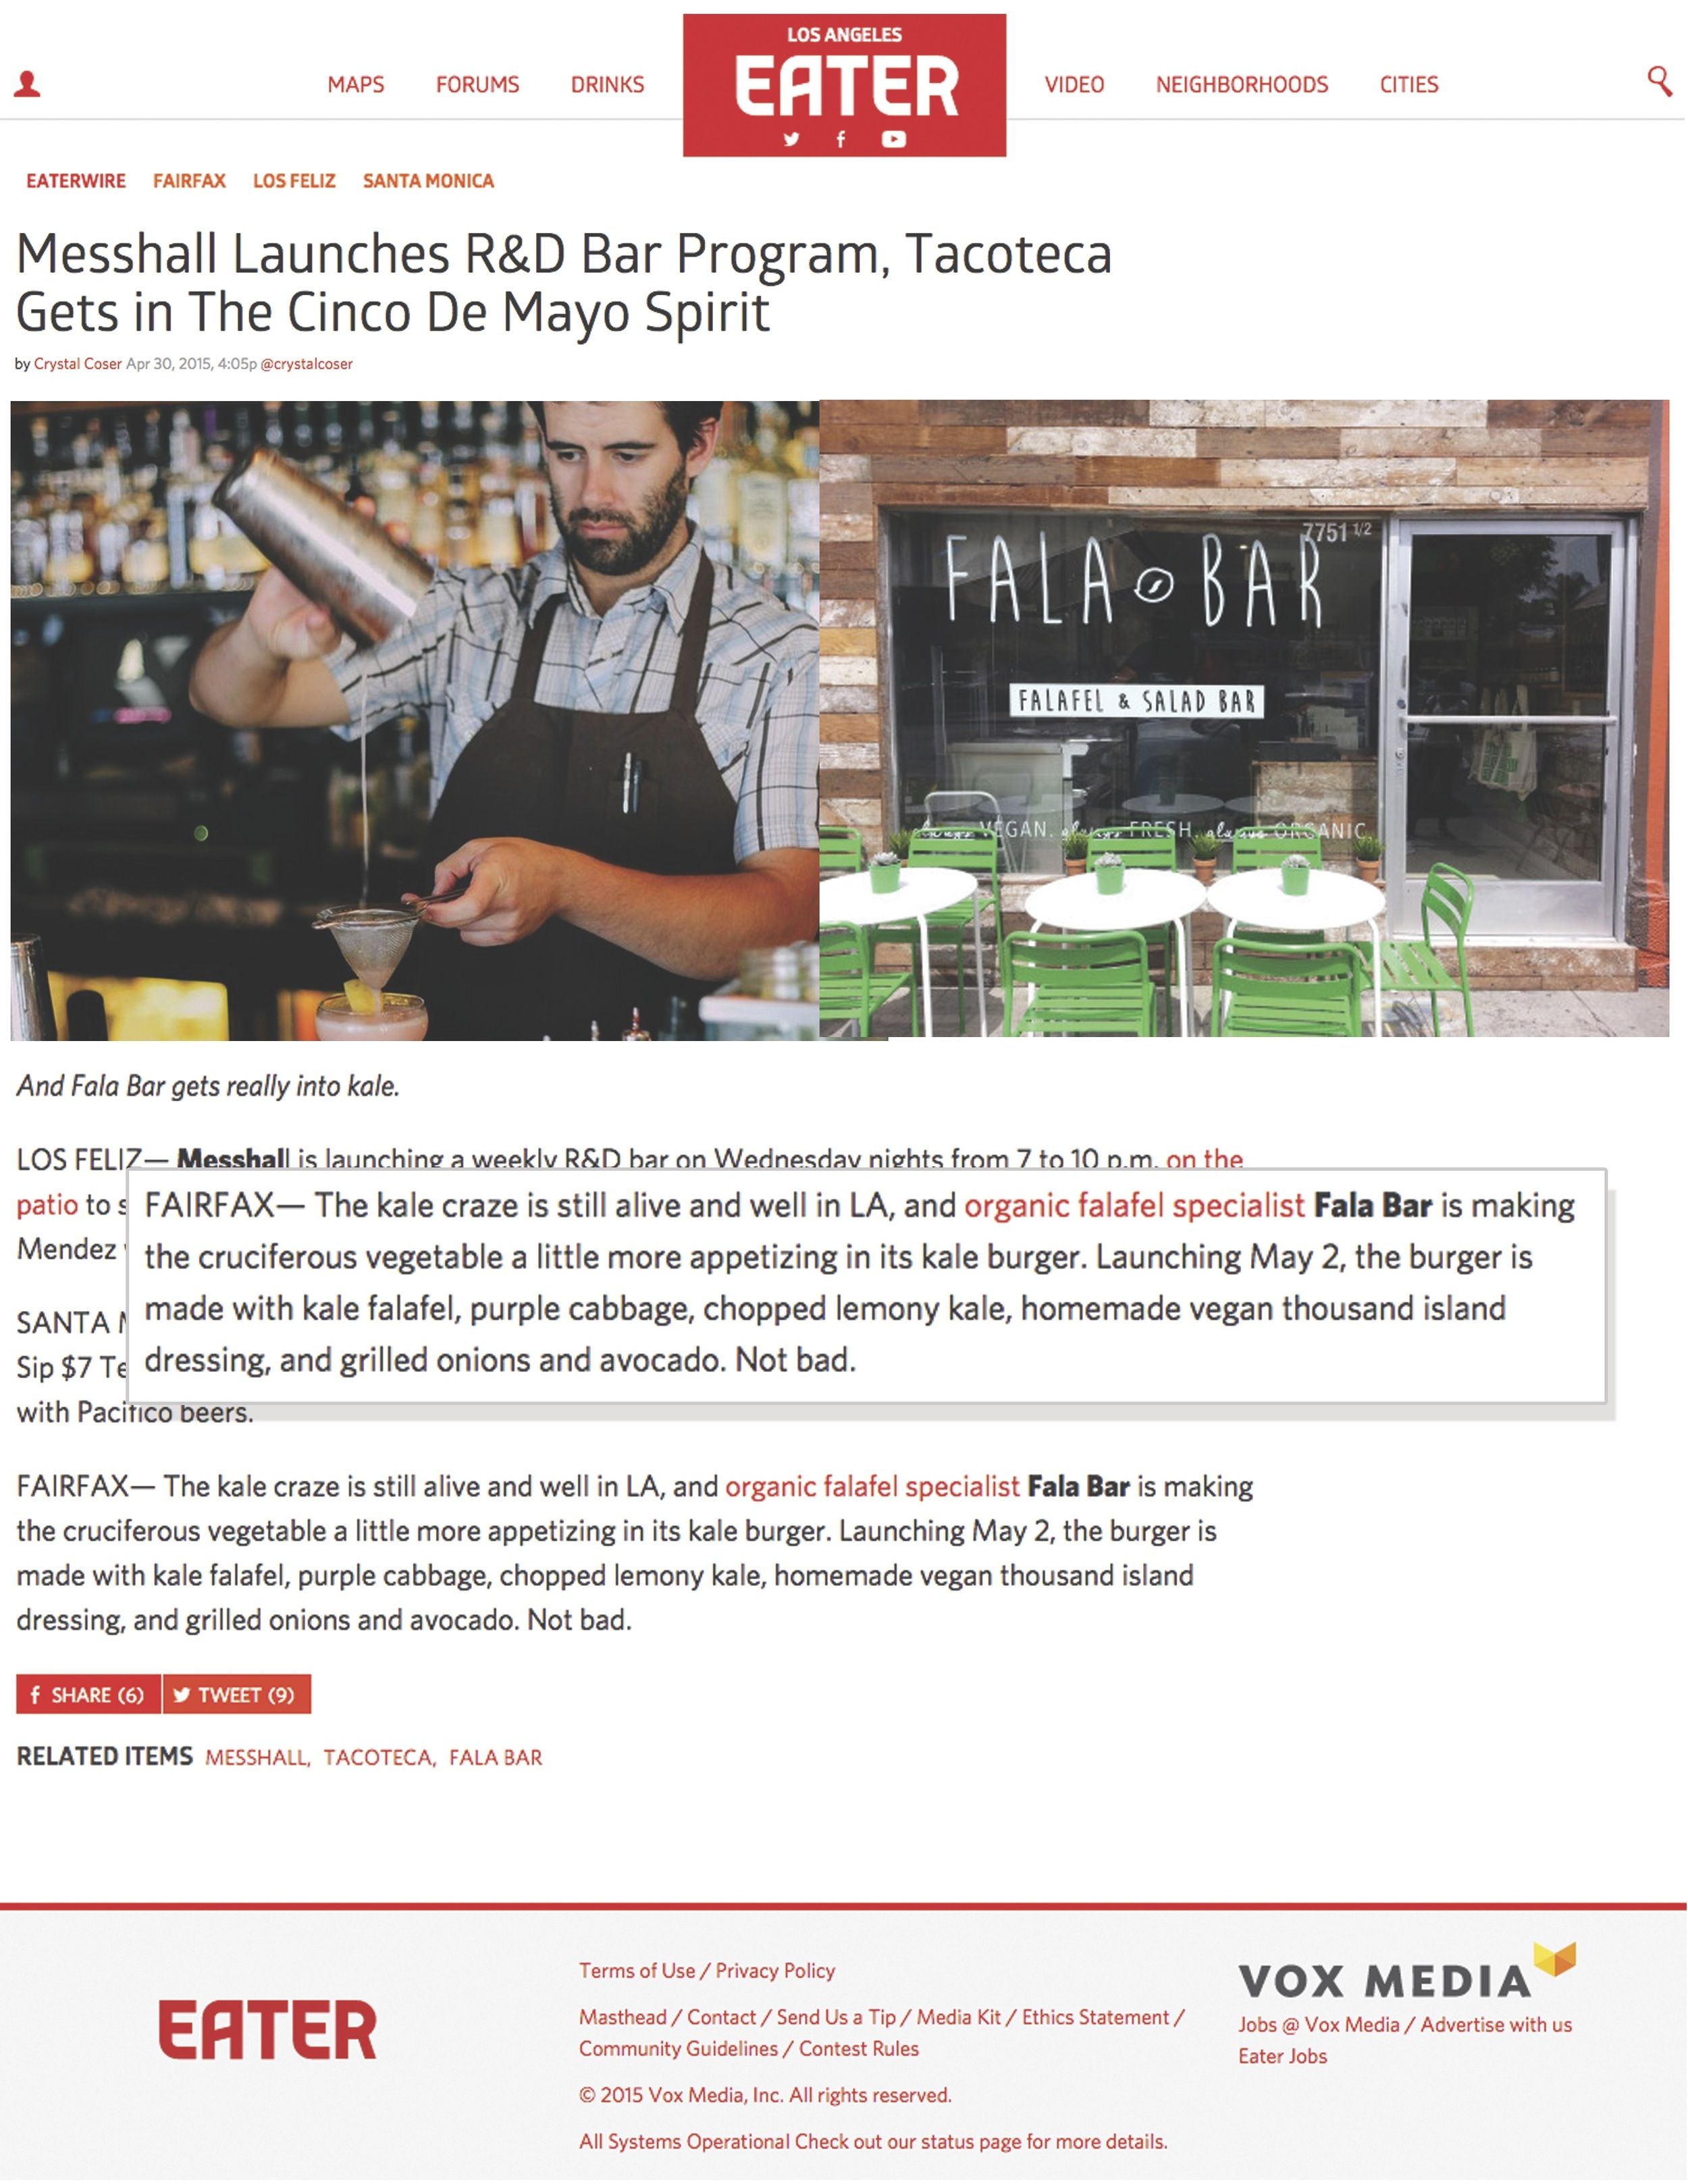 Report about Fala Bar / Los Angeles Eater